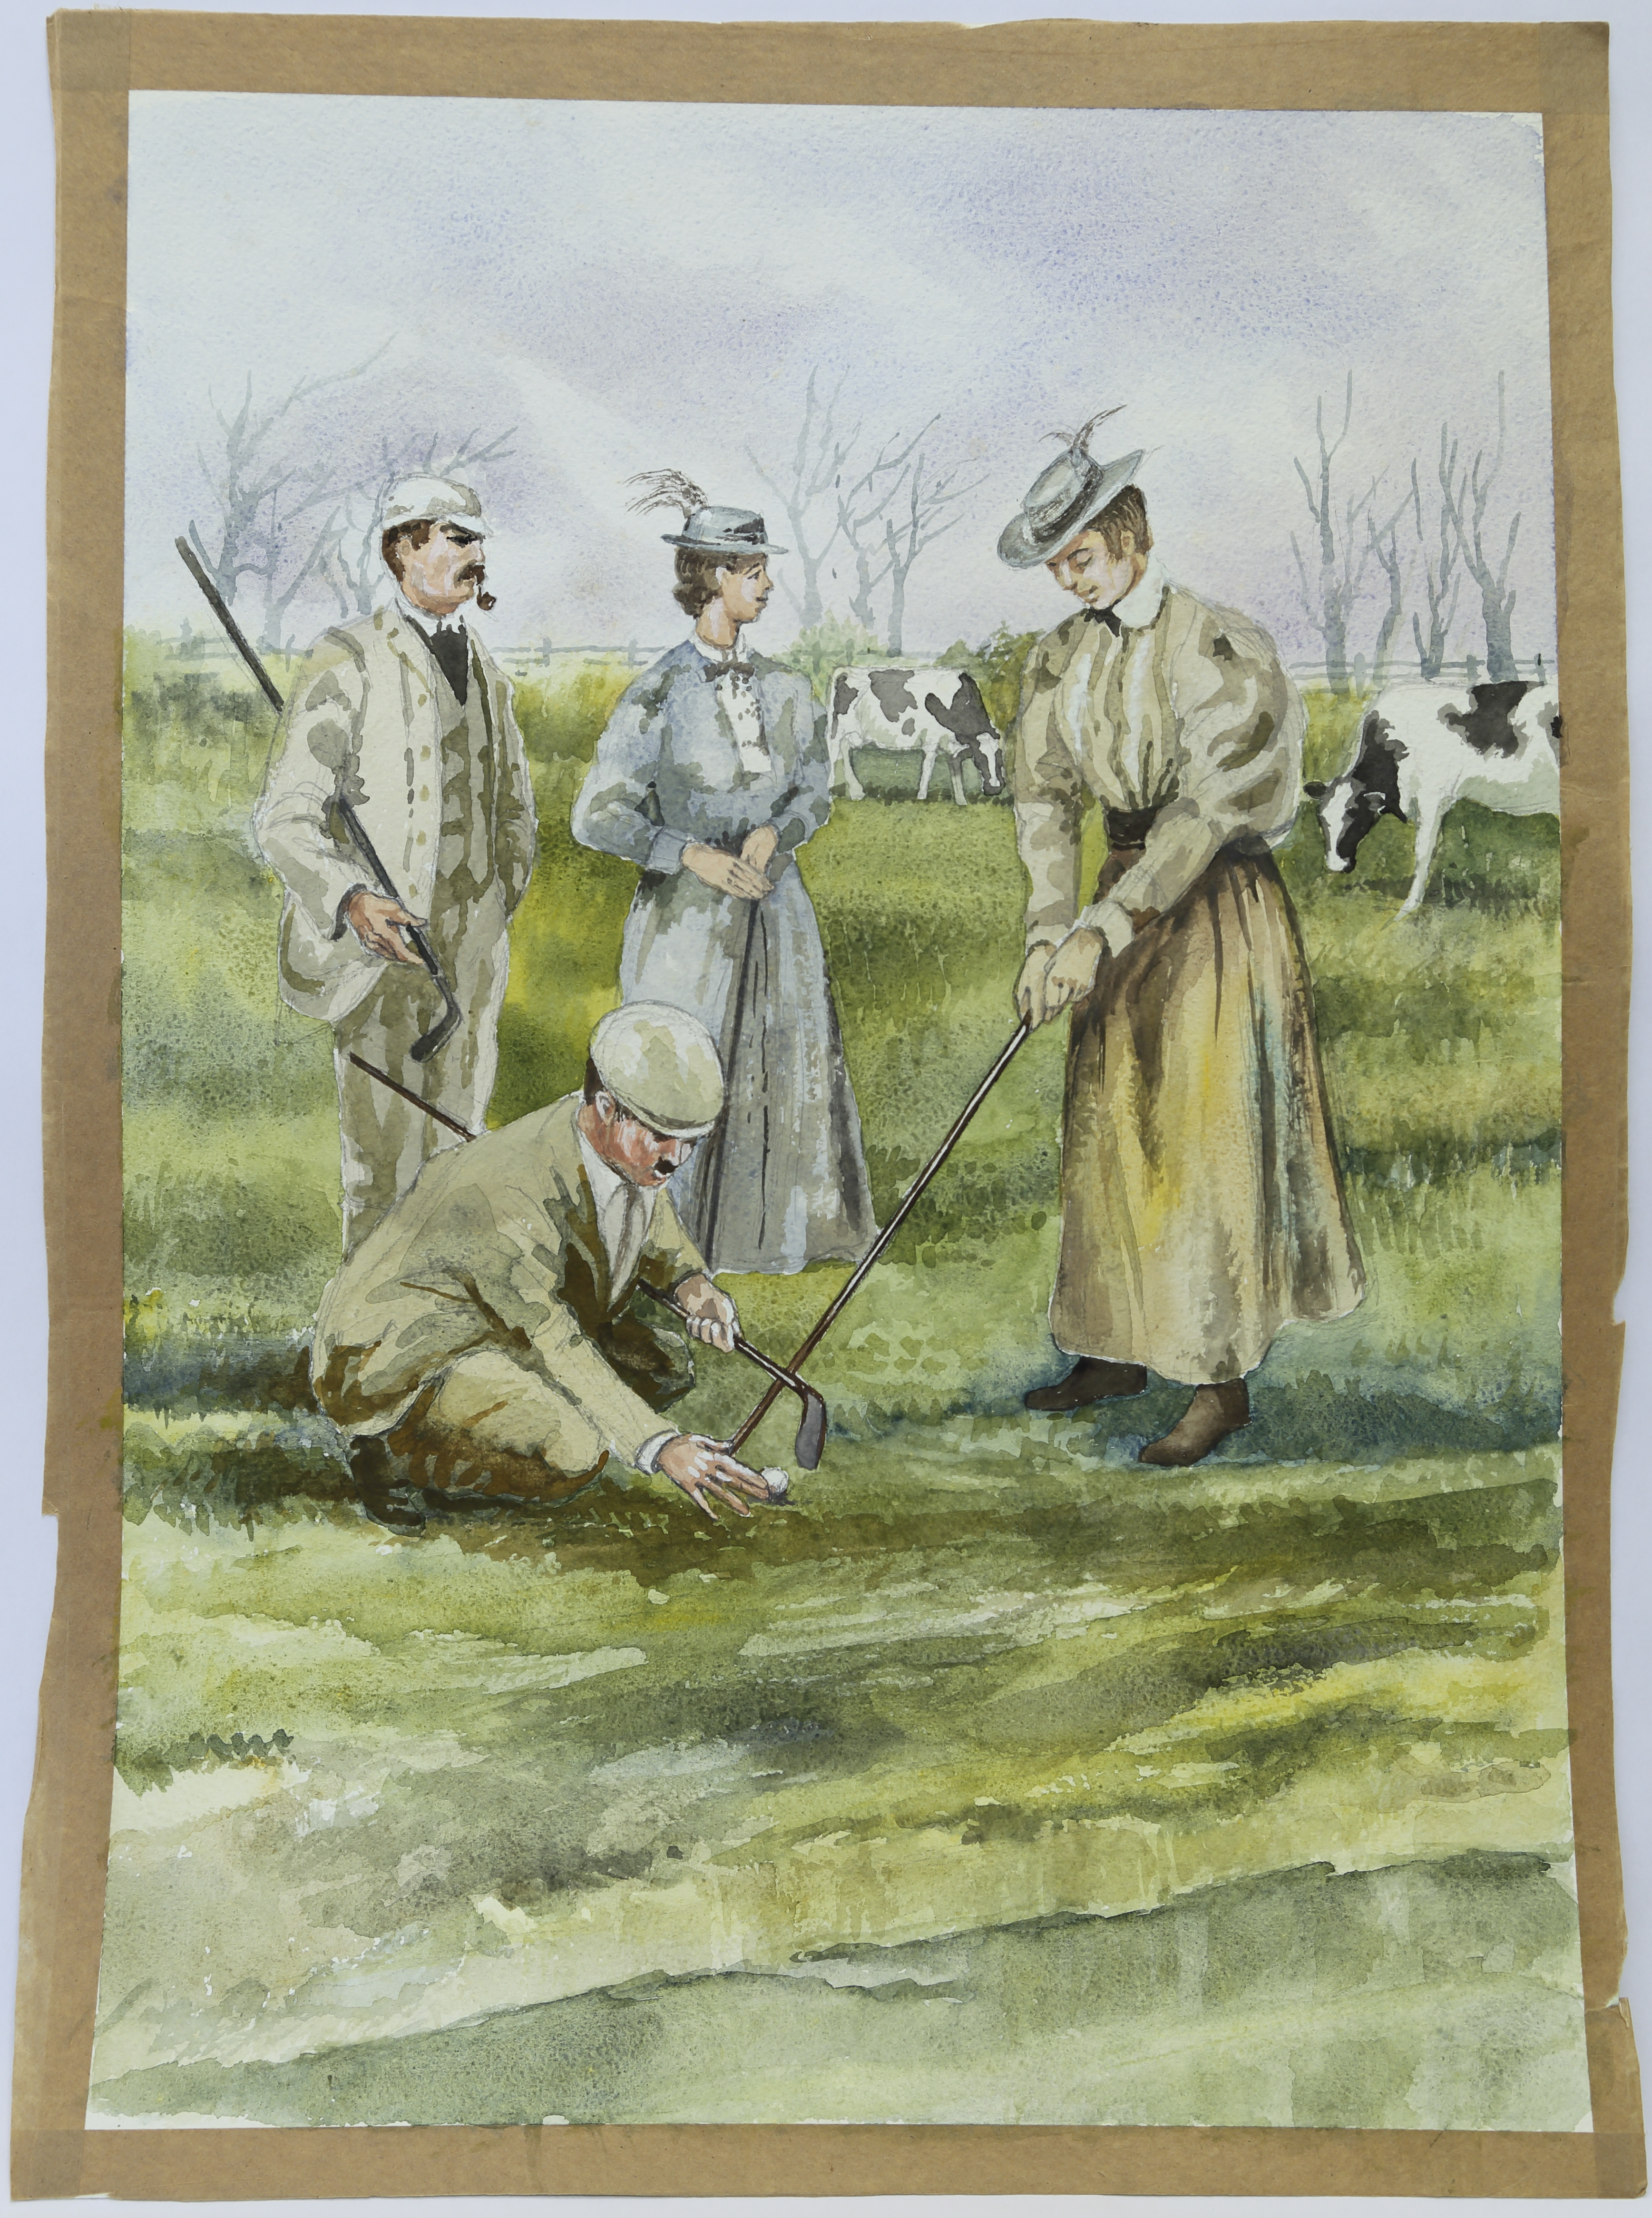 Early golf at Yonkers by T. Griffiths